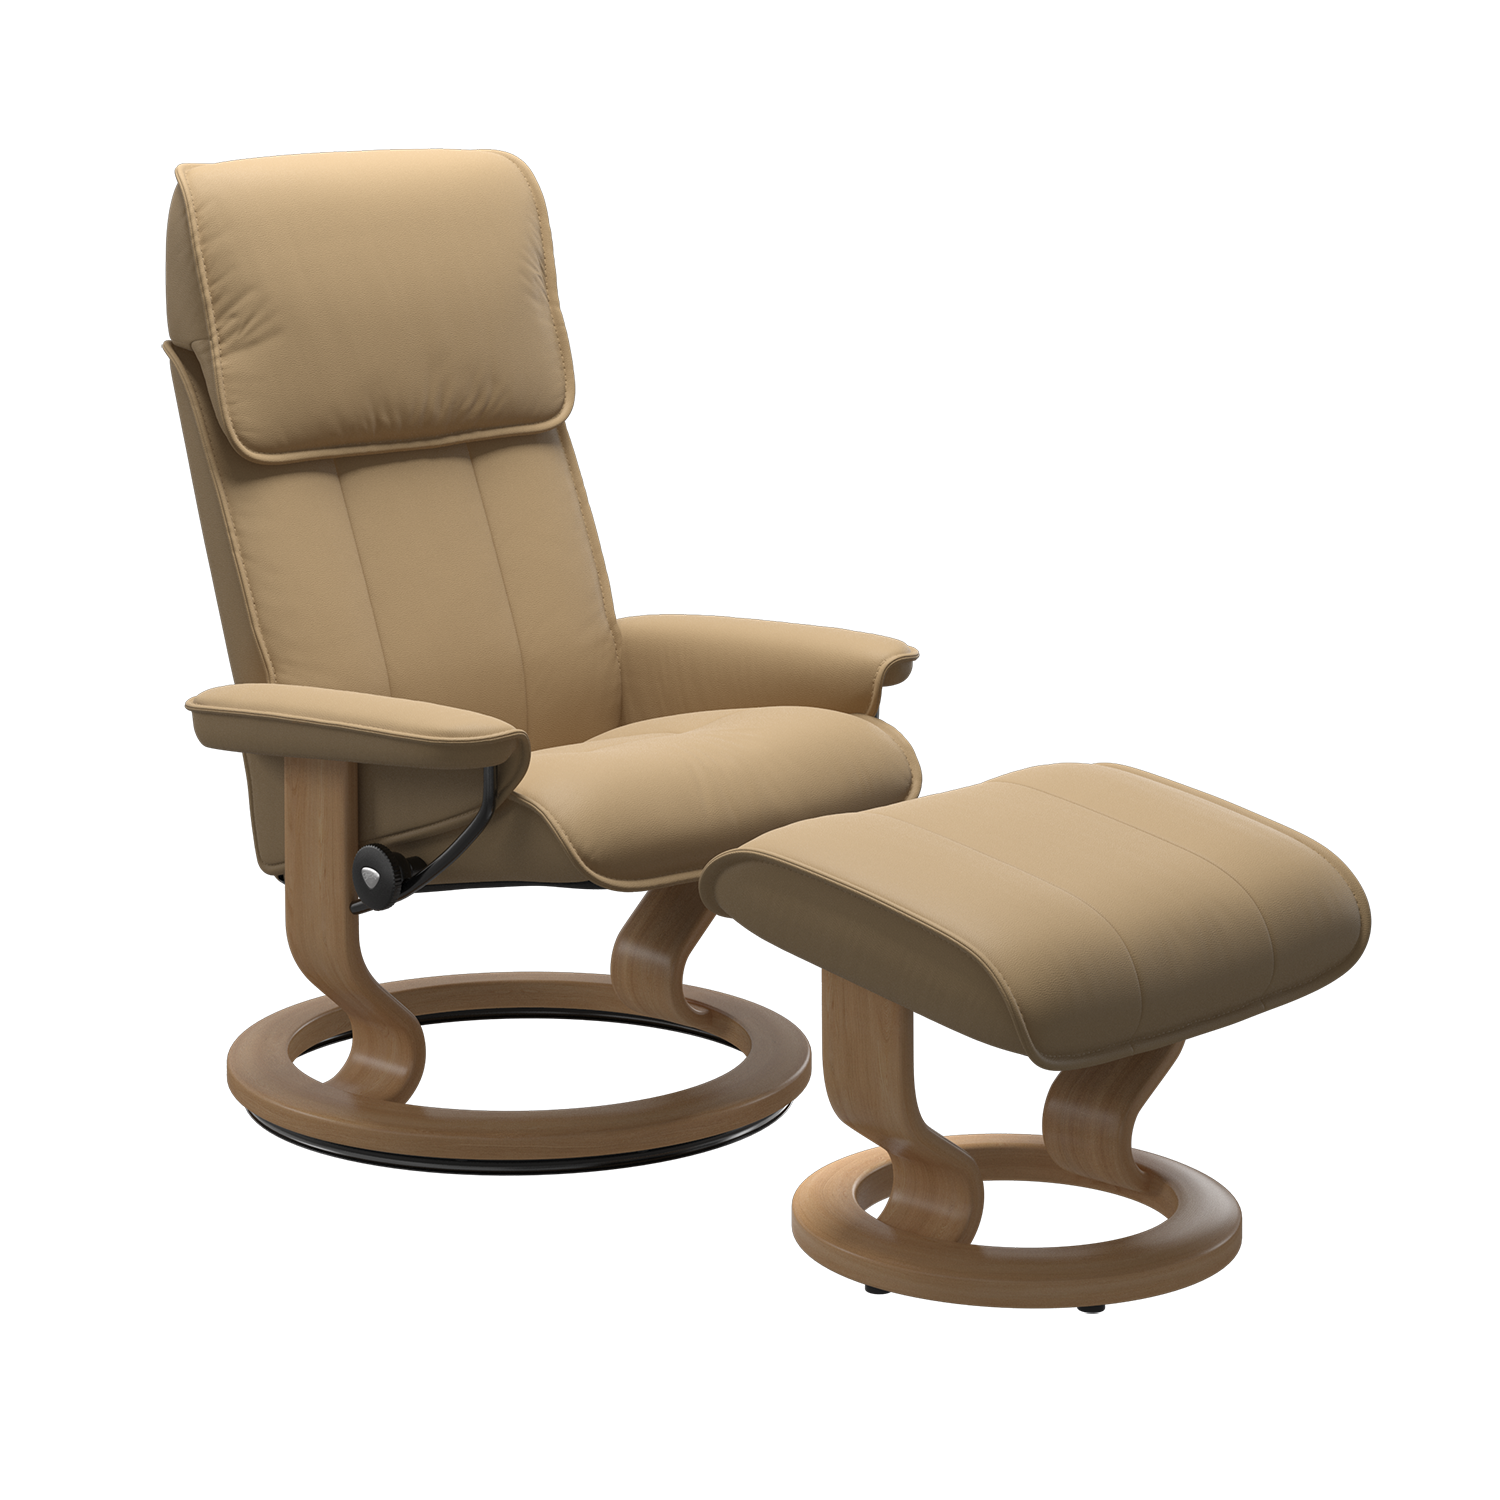 Stressless Admiral Medium Chair & Stool - Paloma Sand/Oak Base